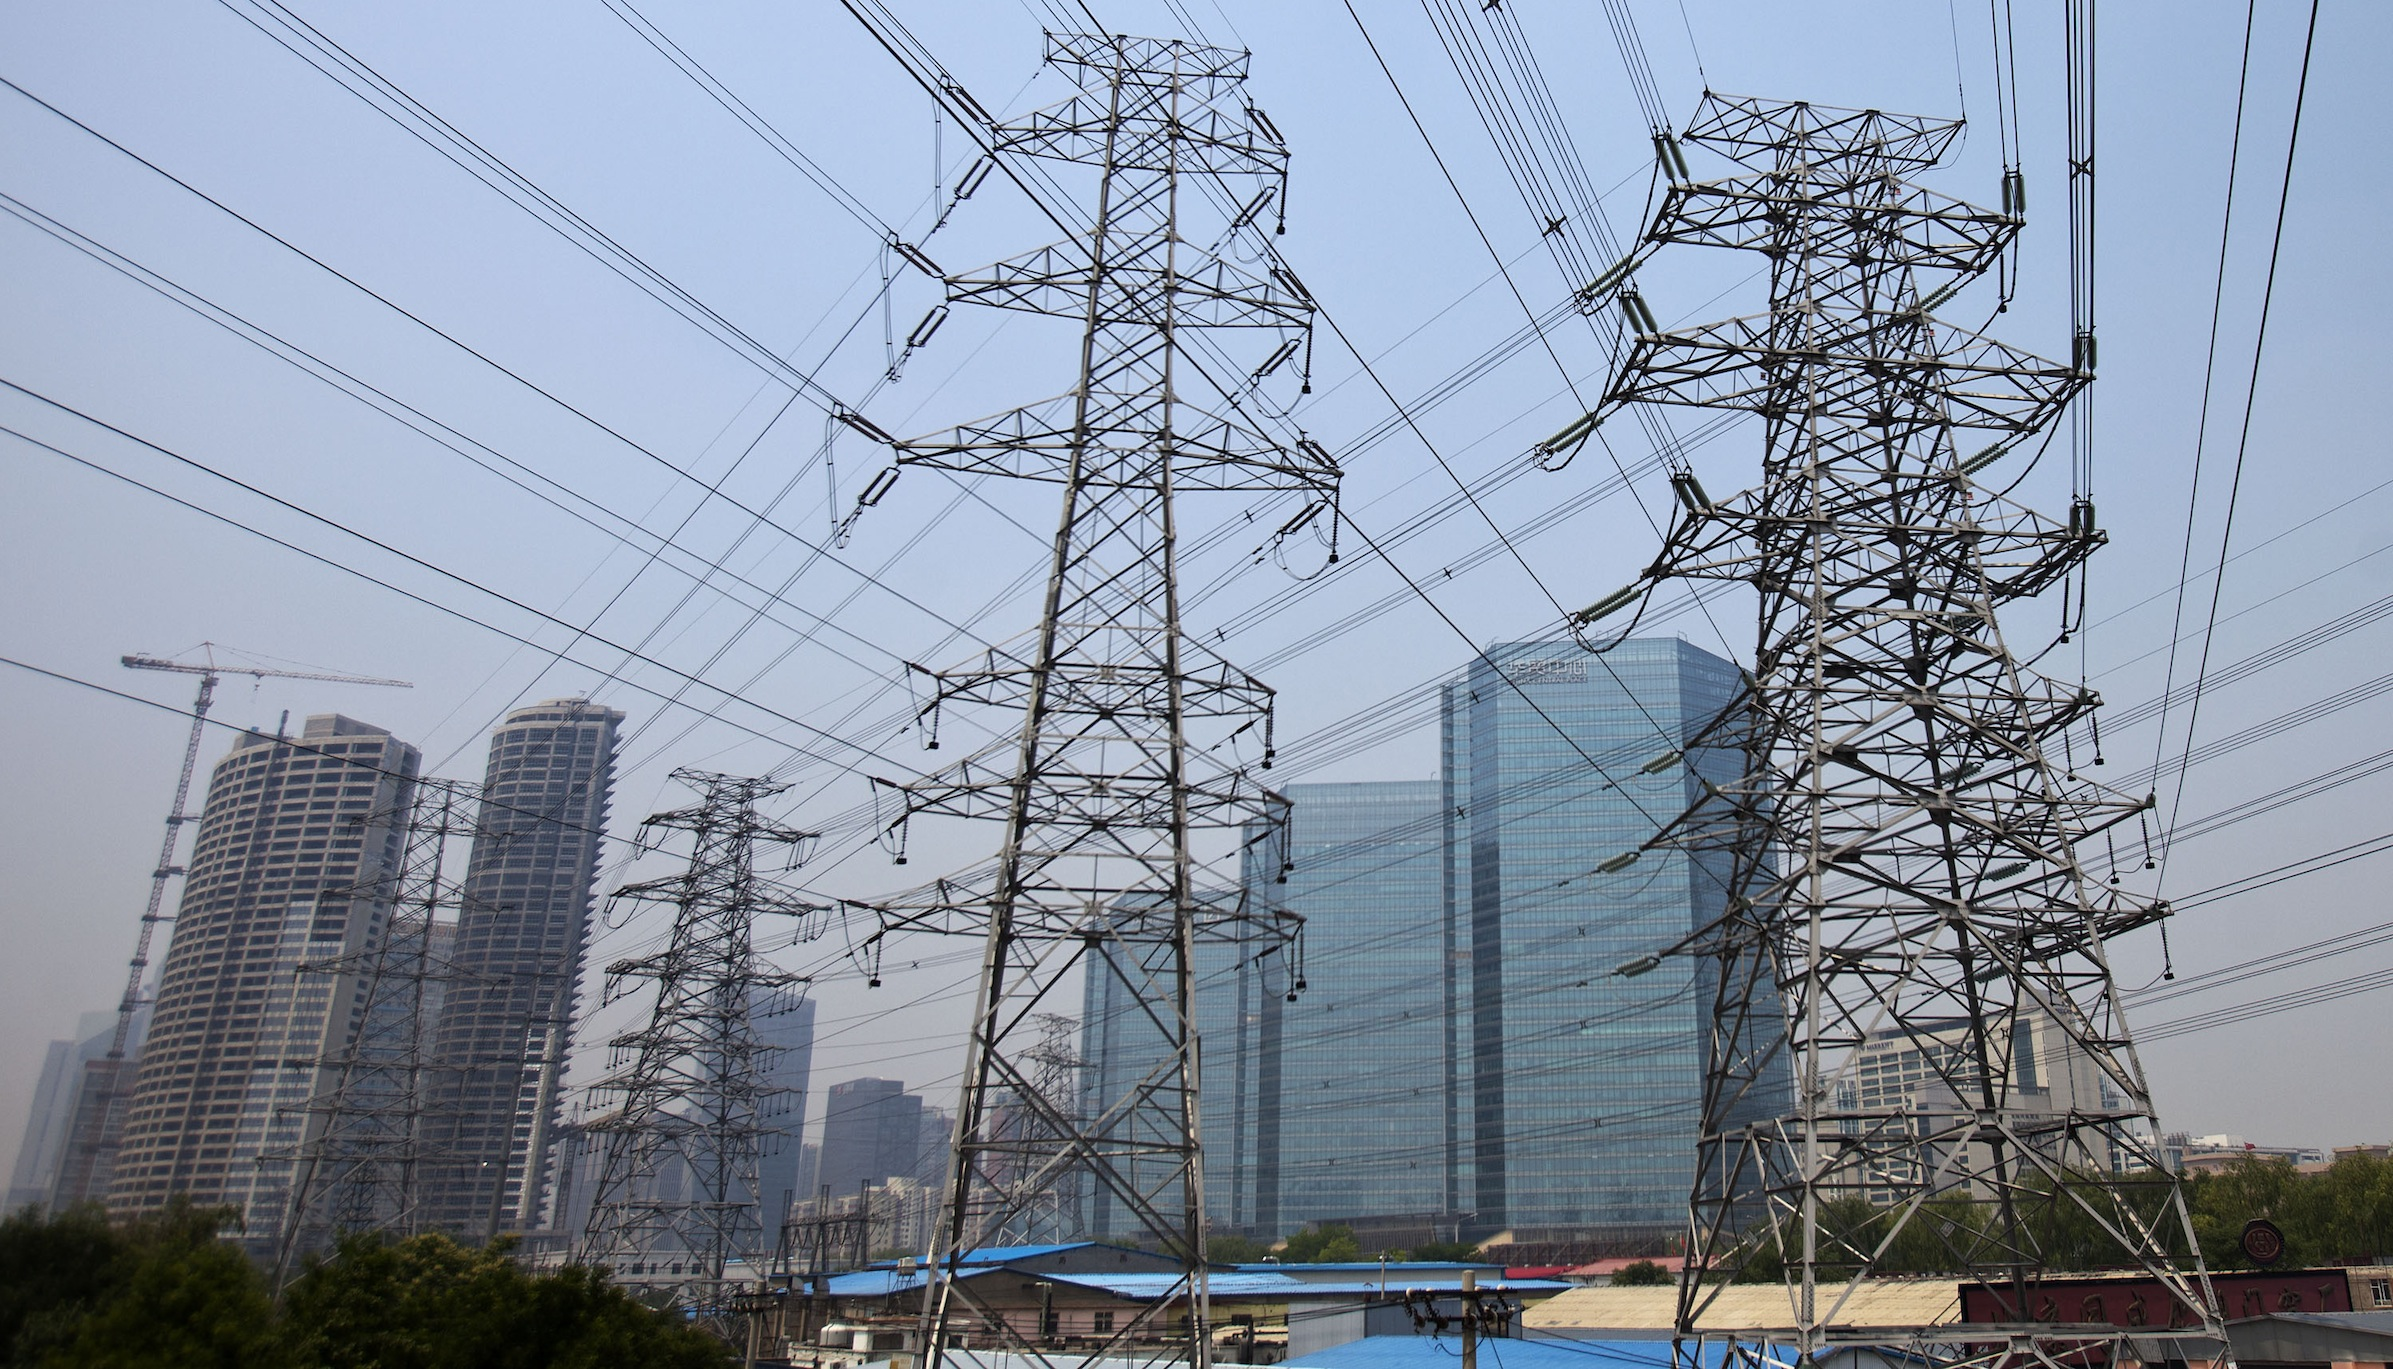 In this photo taken on Friday, May 27, 2011, electric pylons are seen against the commercial buildings at the Central Business District in Beijing, China. China has raised power prices for some industrial users in an apparent effort to promote consumption and encourage utilities to generate more electricity as parts of the country grapple with their worst shortages in years. (AP Photo/Andy Wong)